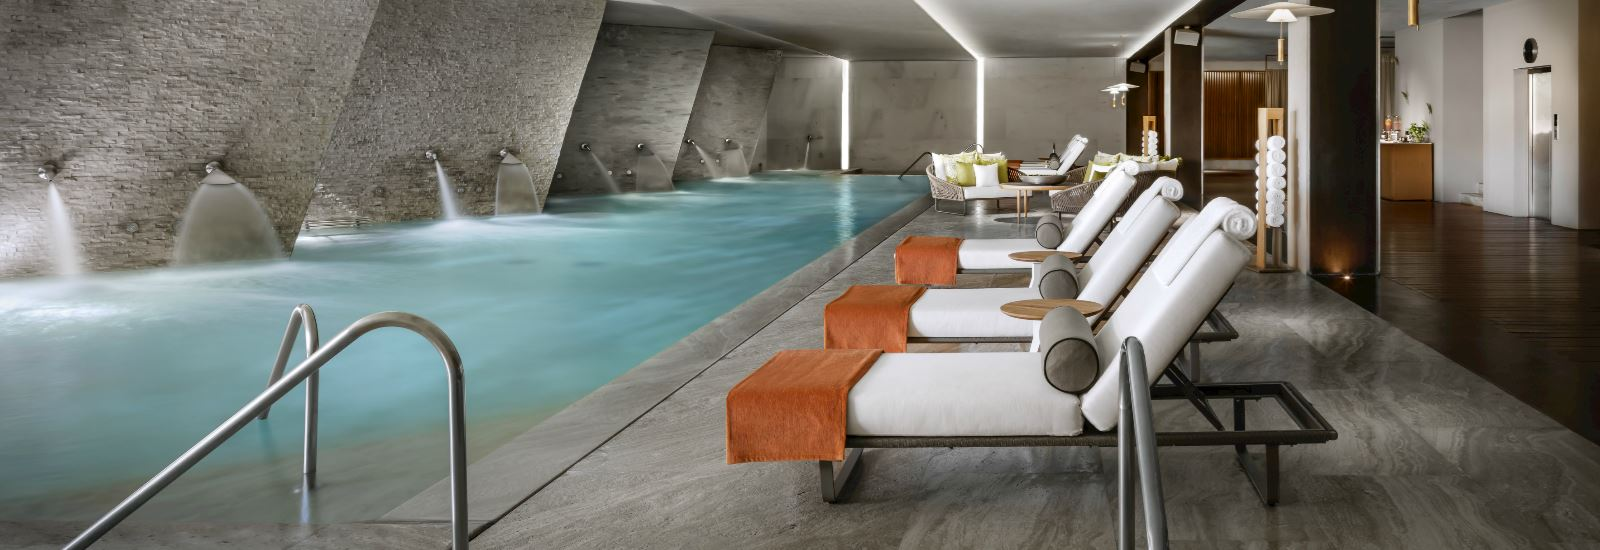 Indoor Pool with Spa at Grand Velas Los Cabos